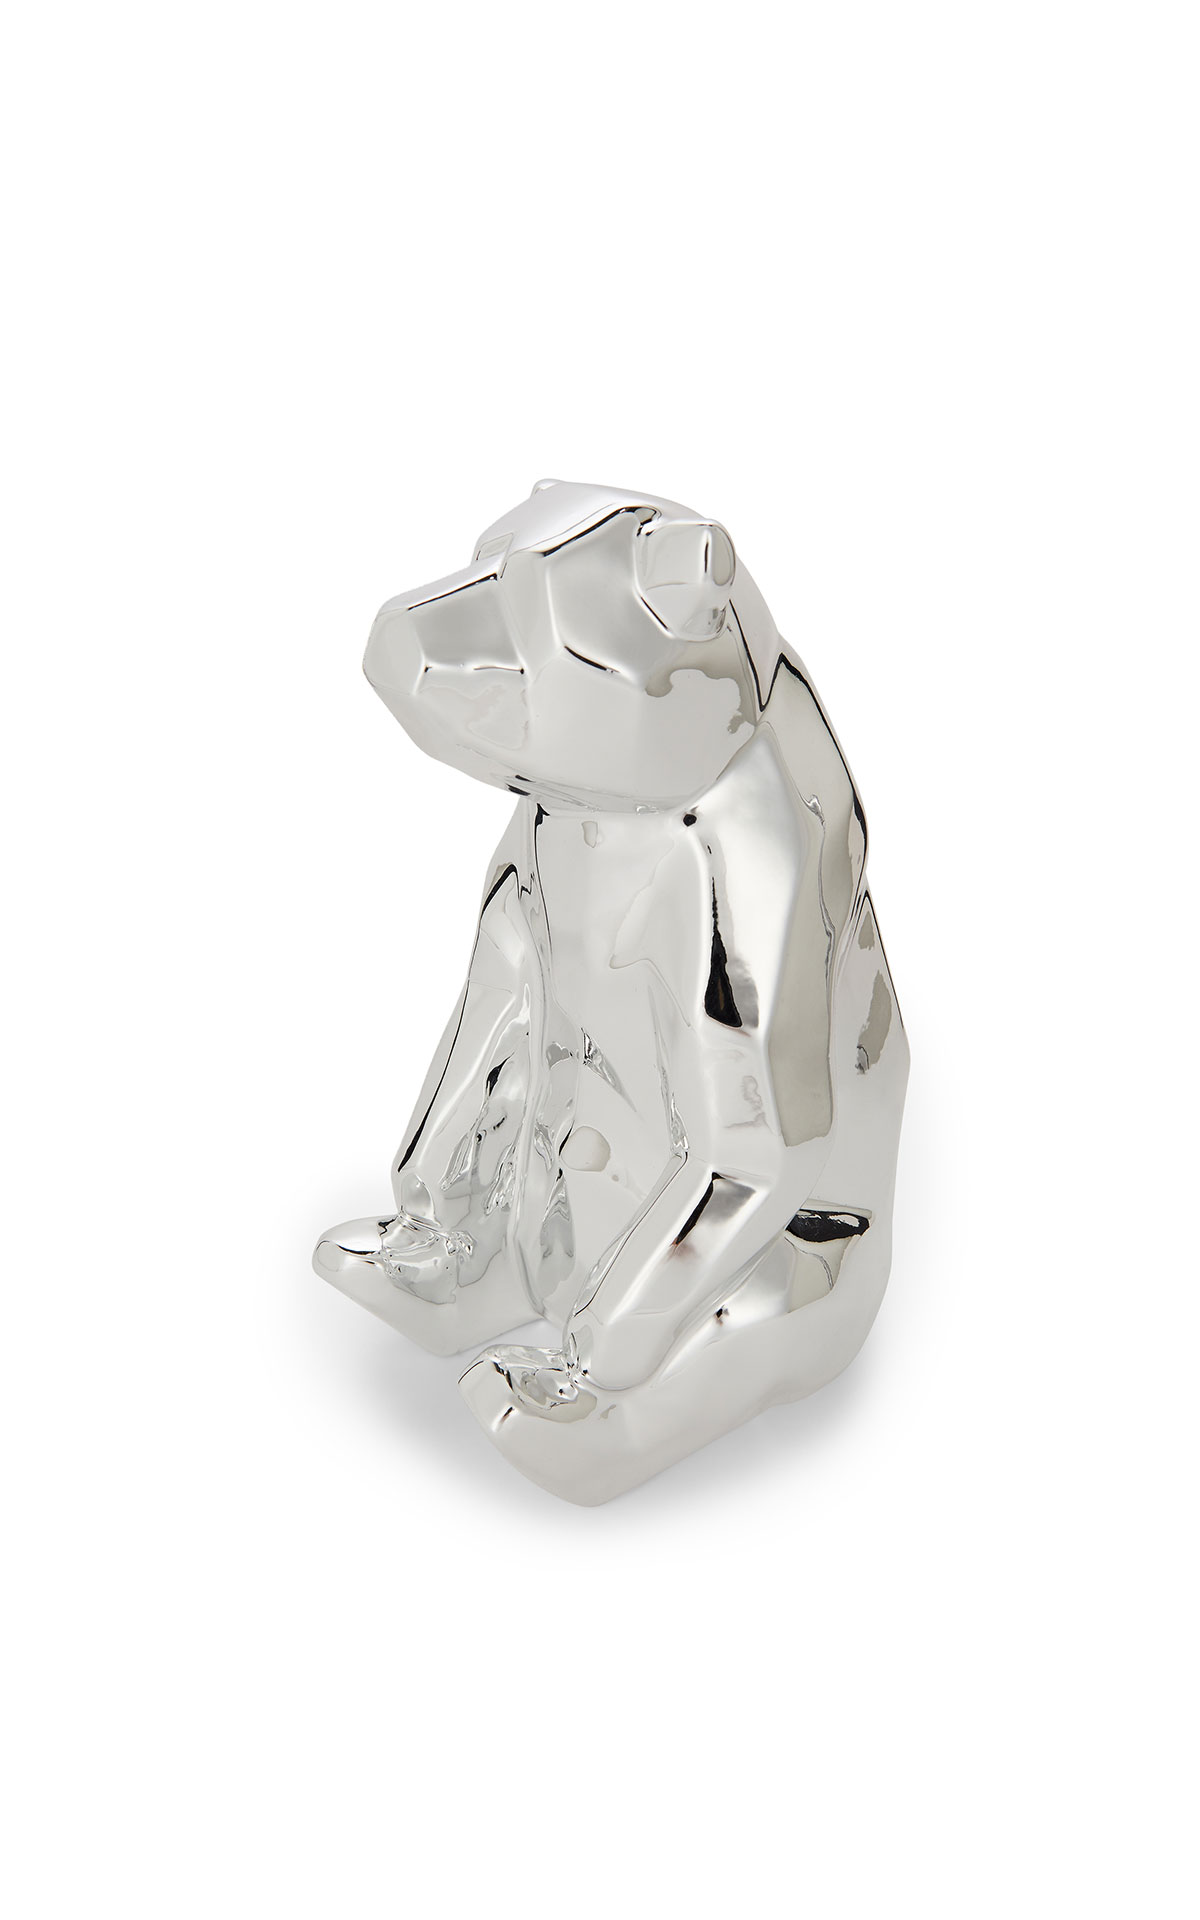 Ted Baker's polar bear money box at the Bicester Village Shopping Collection